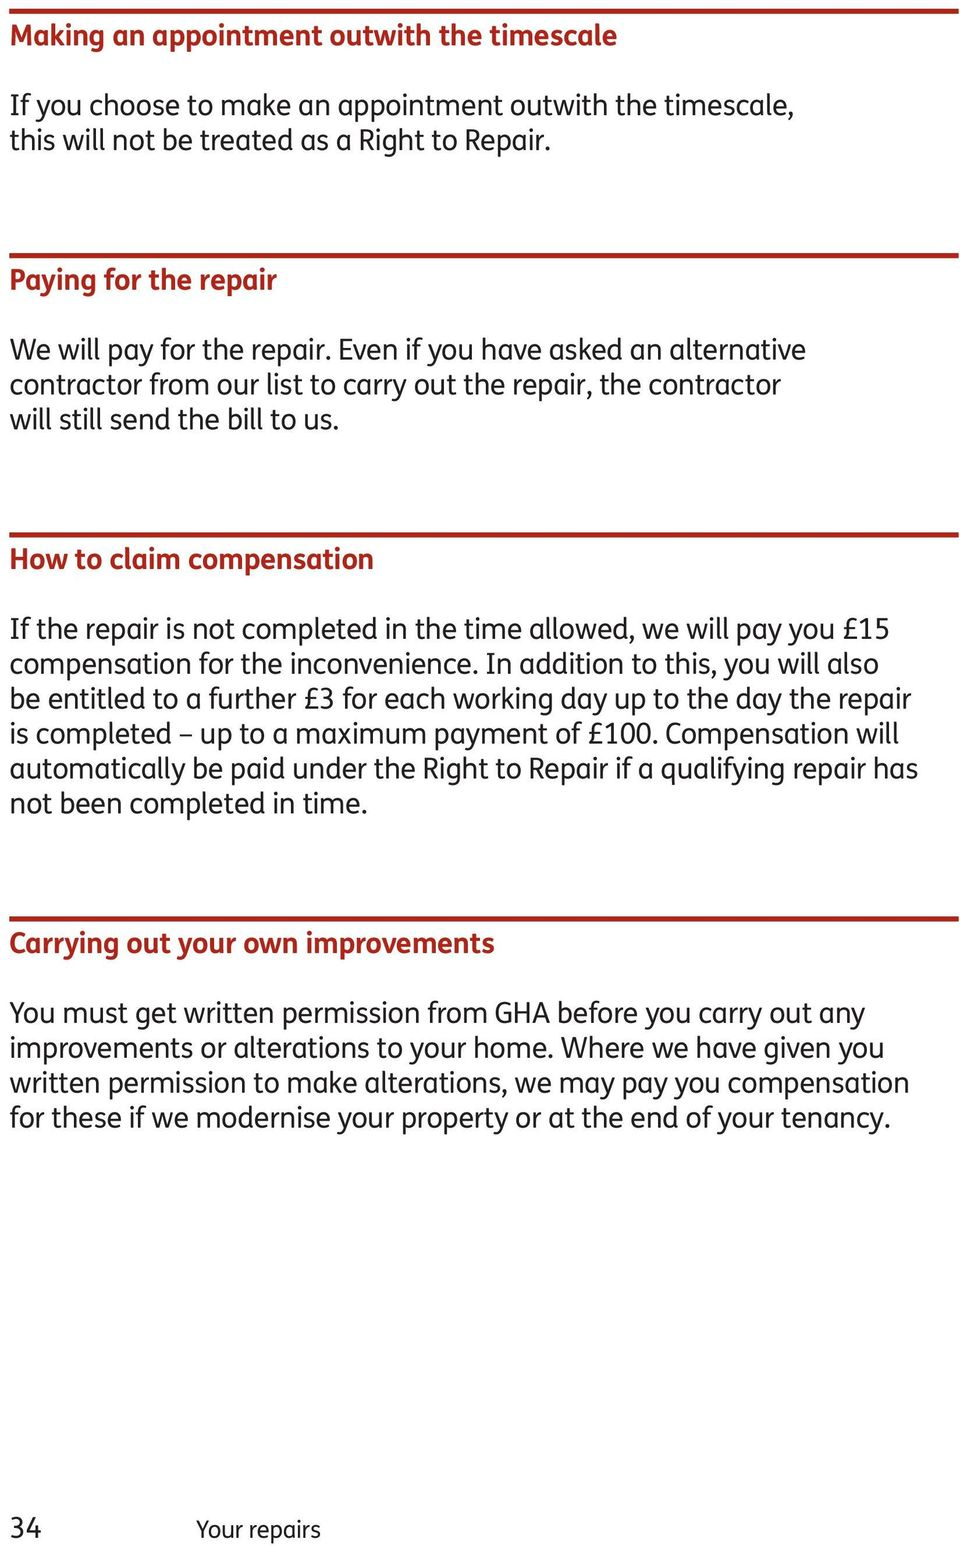 How to claim compensation If the repair is not completed in the time allowed, we will pay you 15 compensation for the inconvenience.